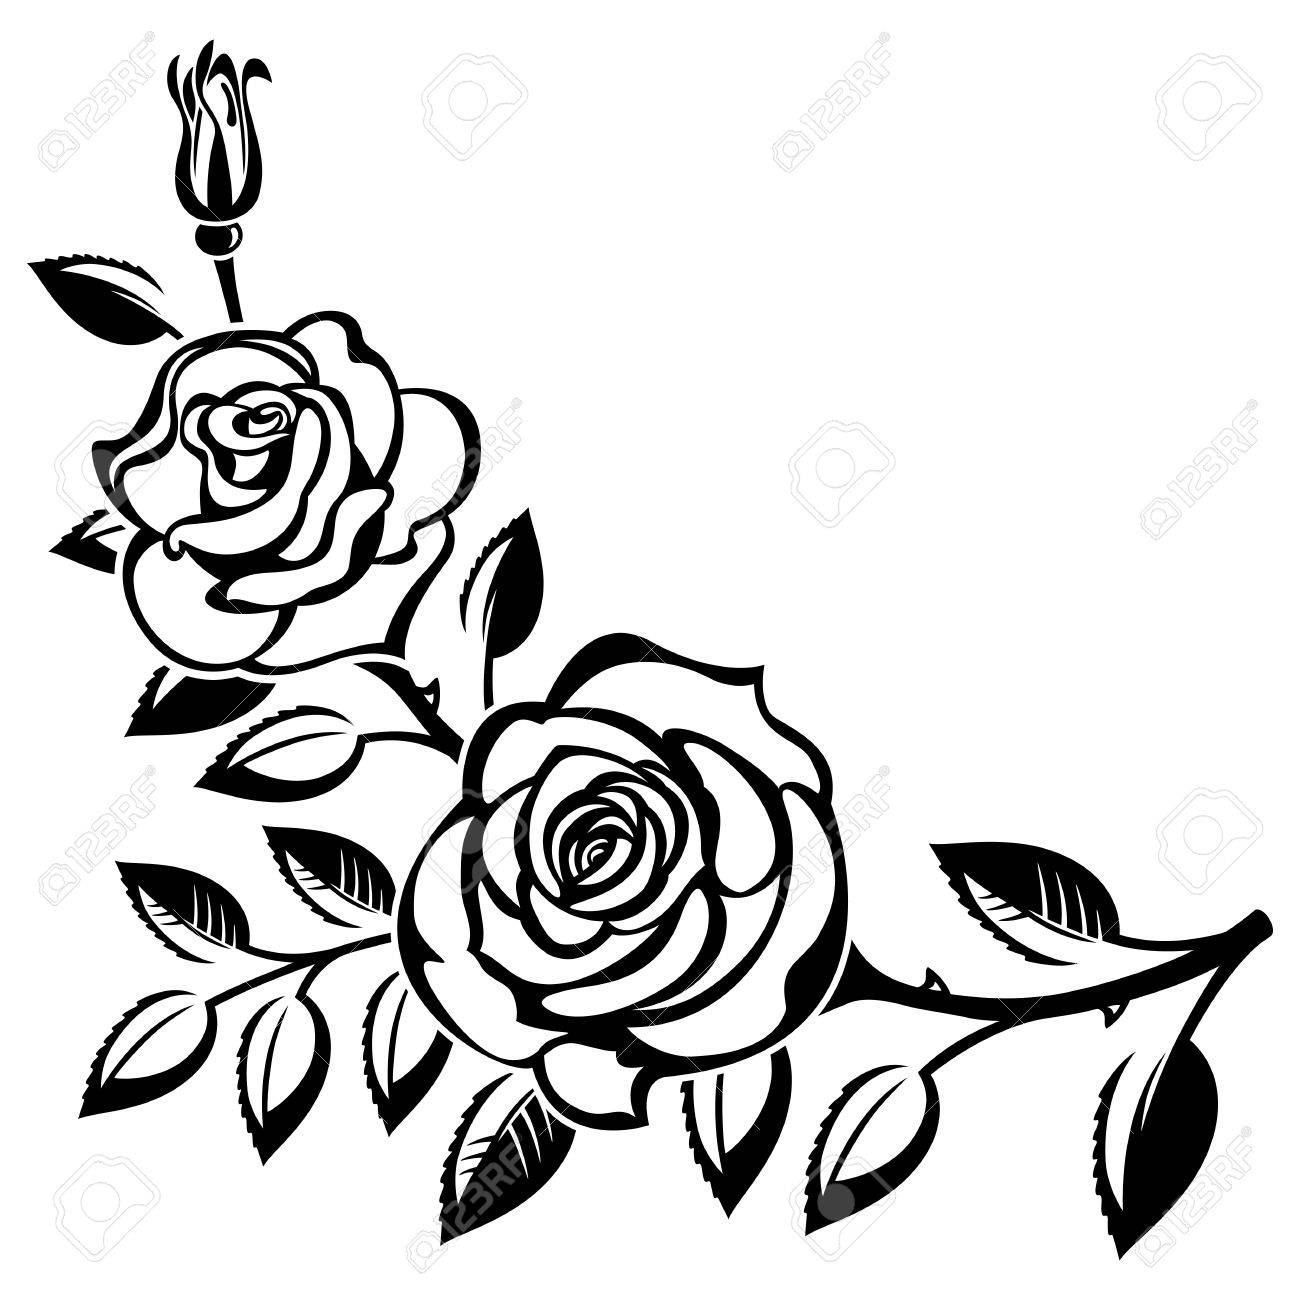 Branch of roses on a white background - 38013594